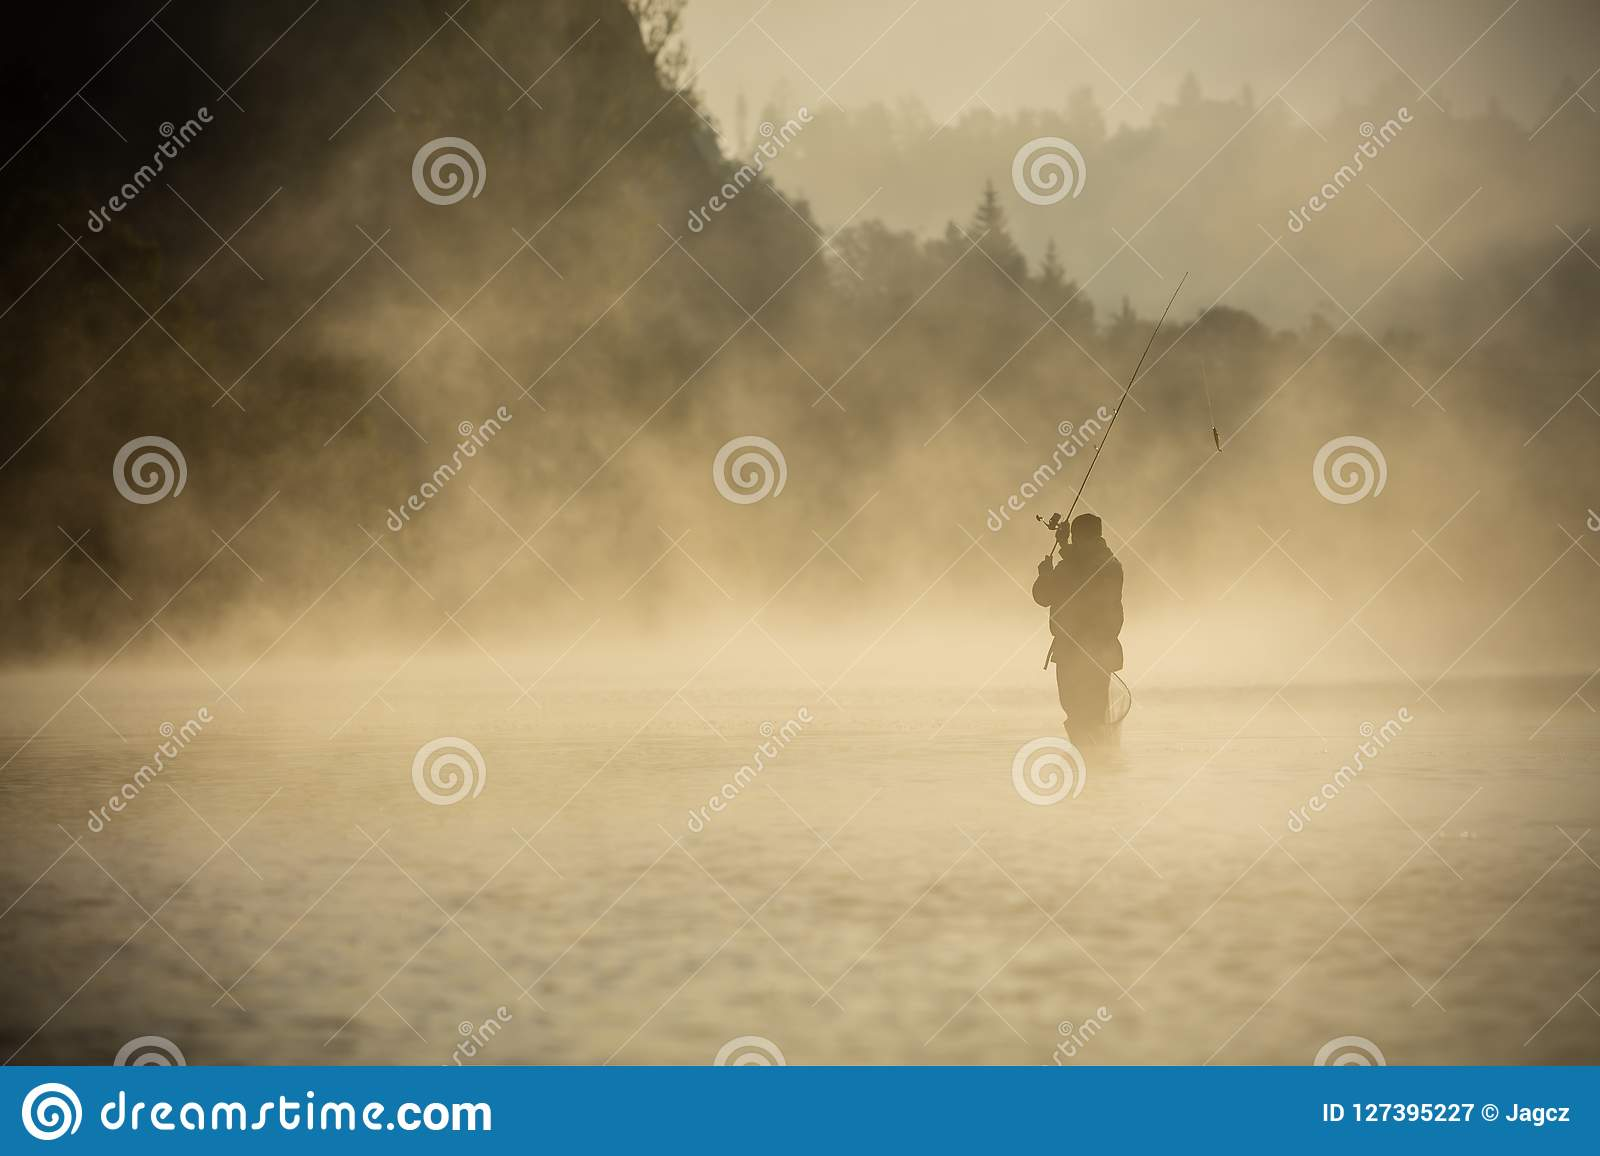 Fisherman holding fishing rod, standing in river